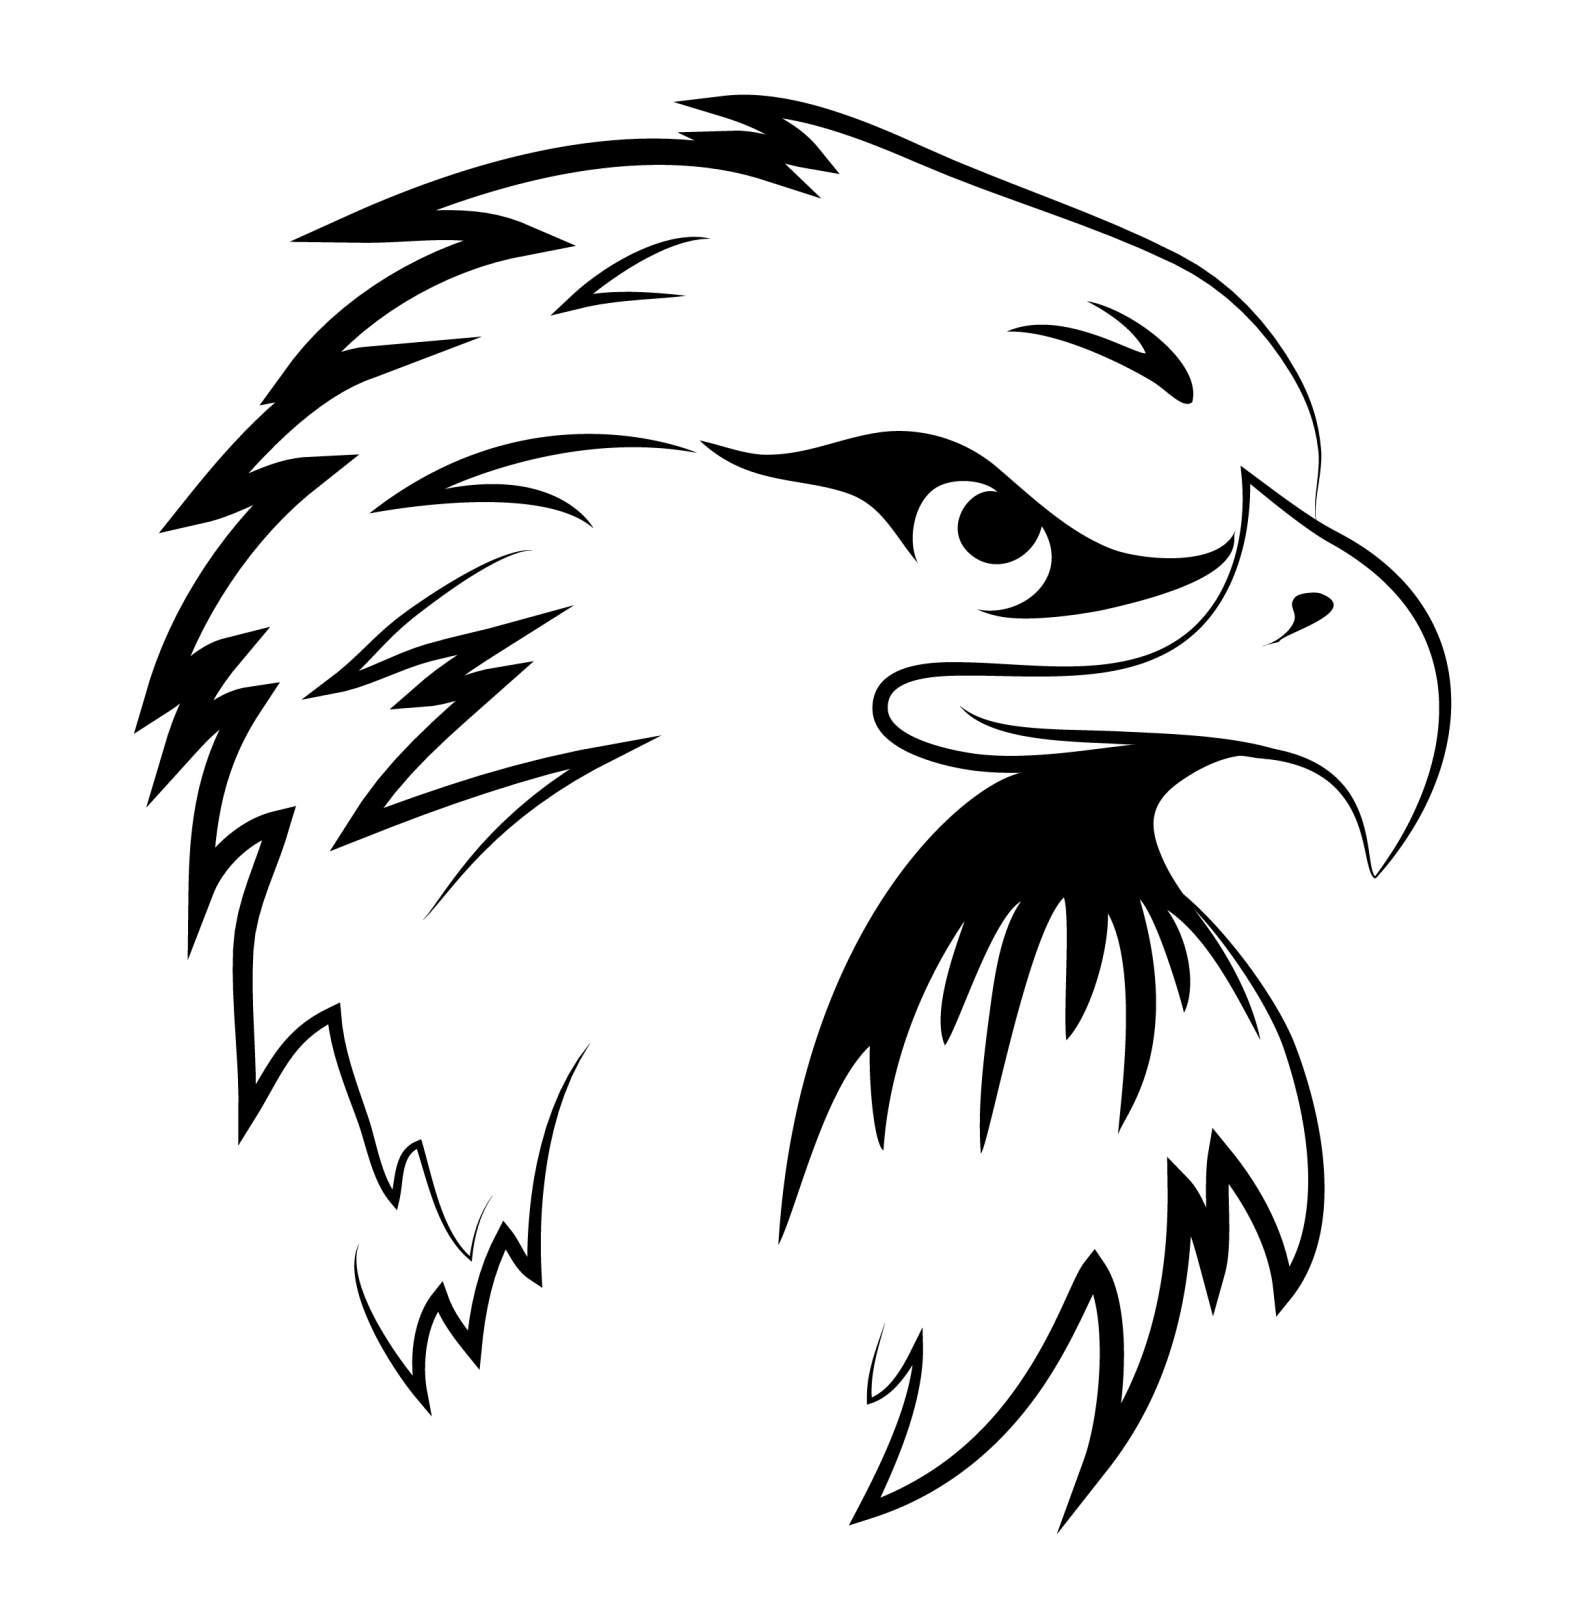 1581x1600 Eagle Head Free Vector 4vector